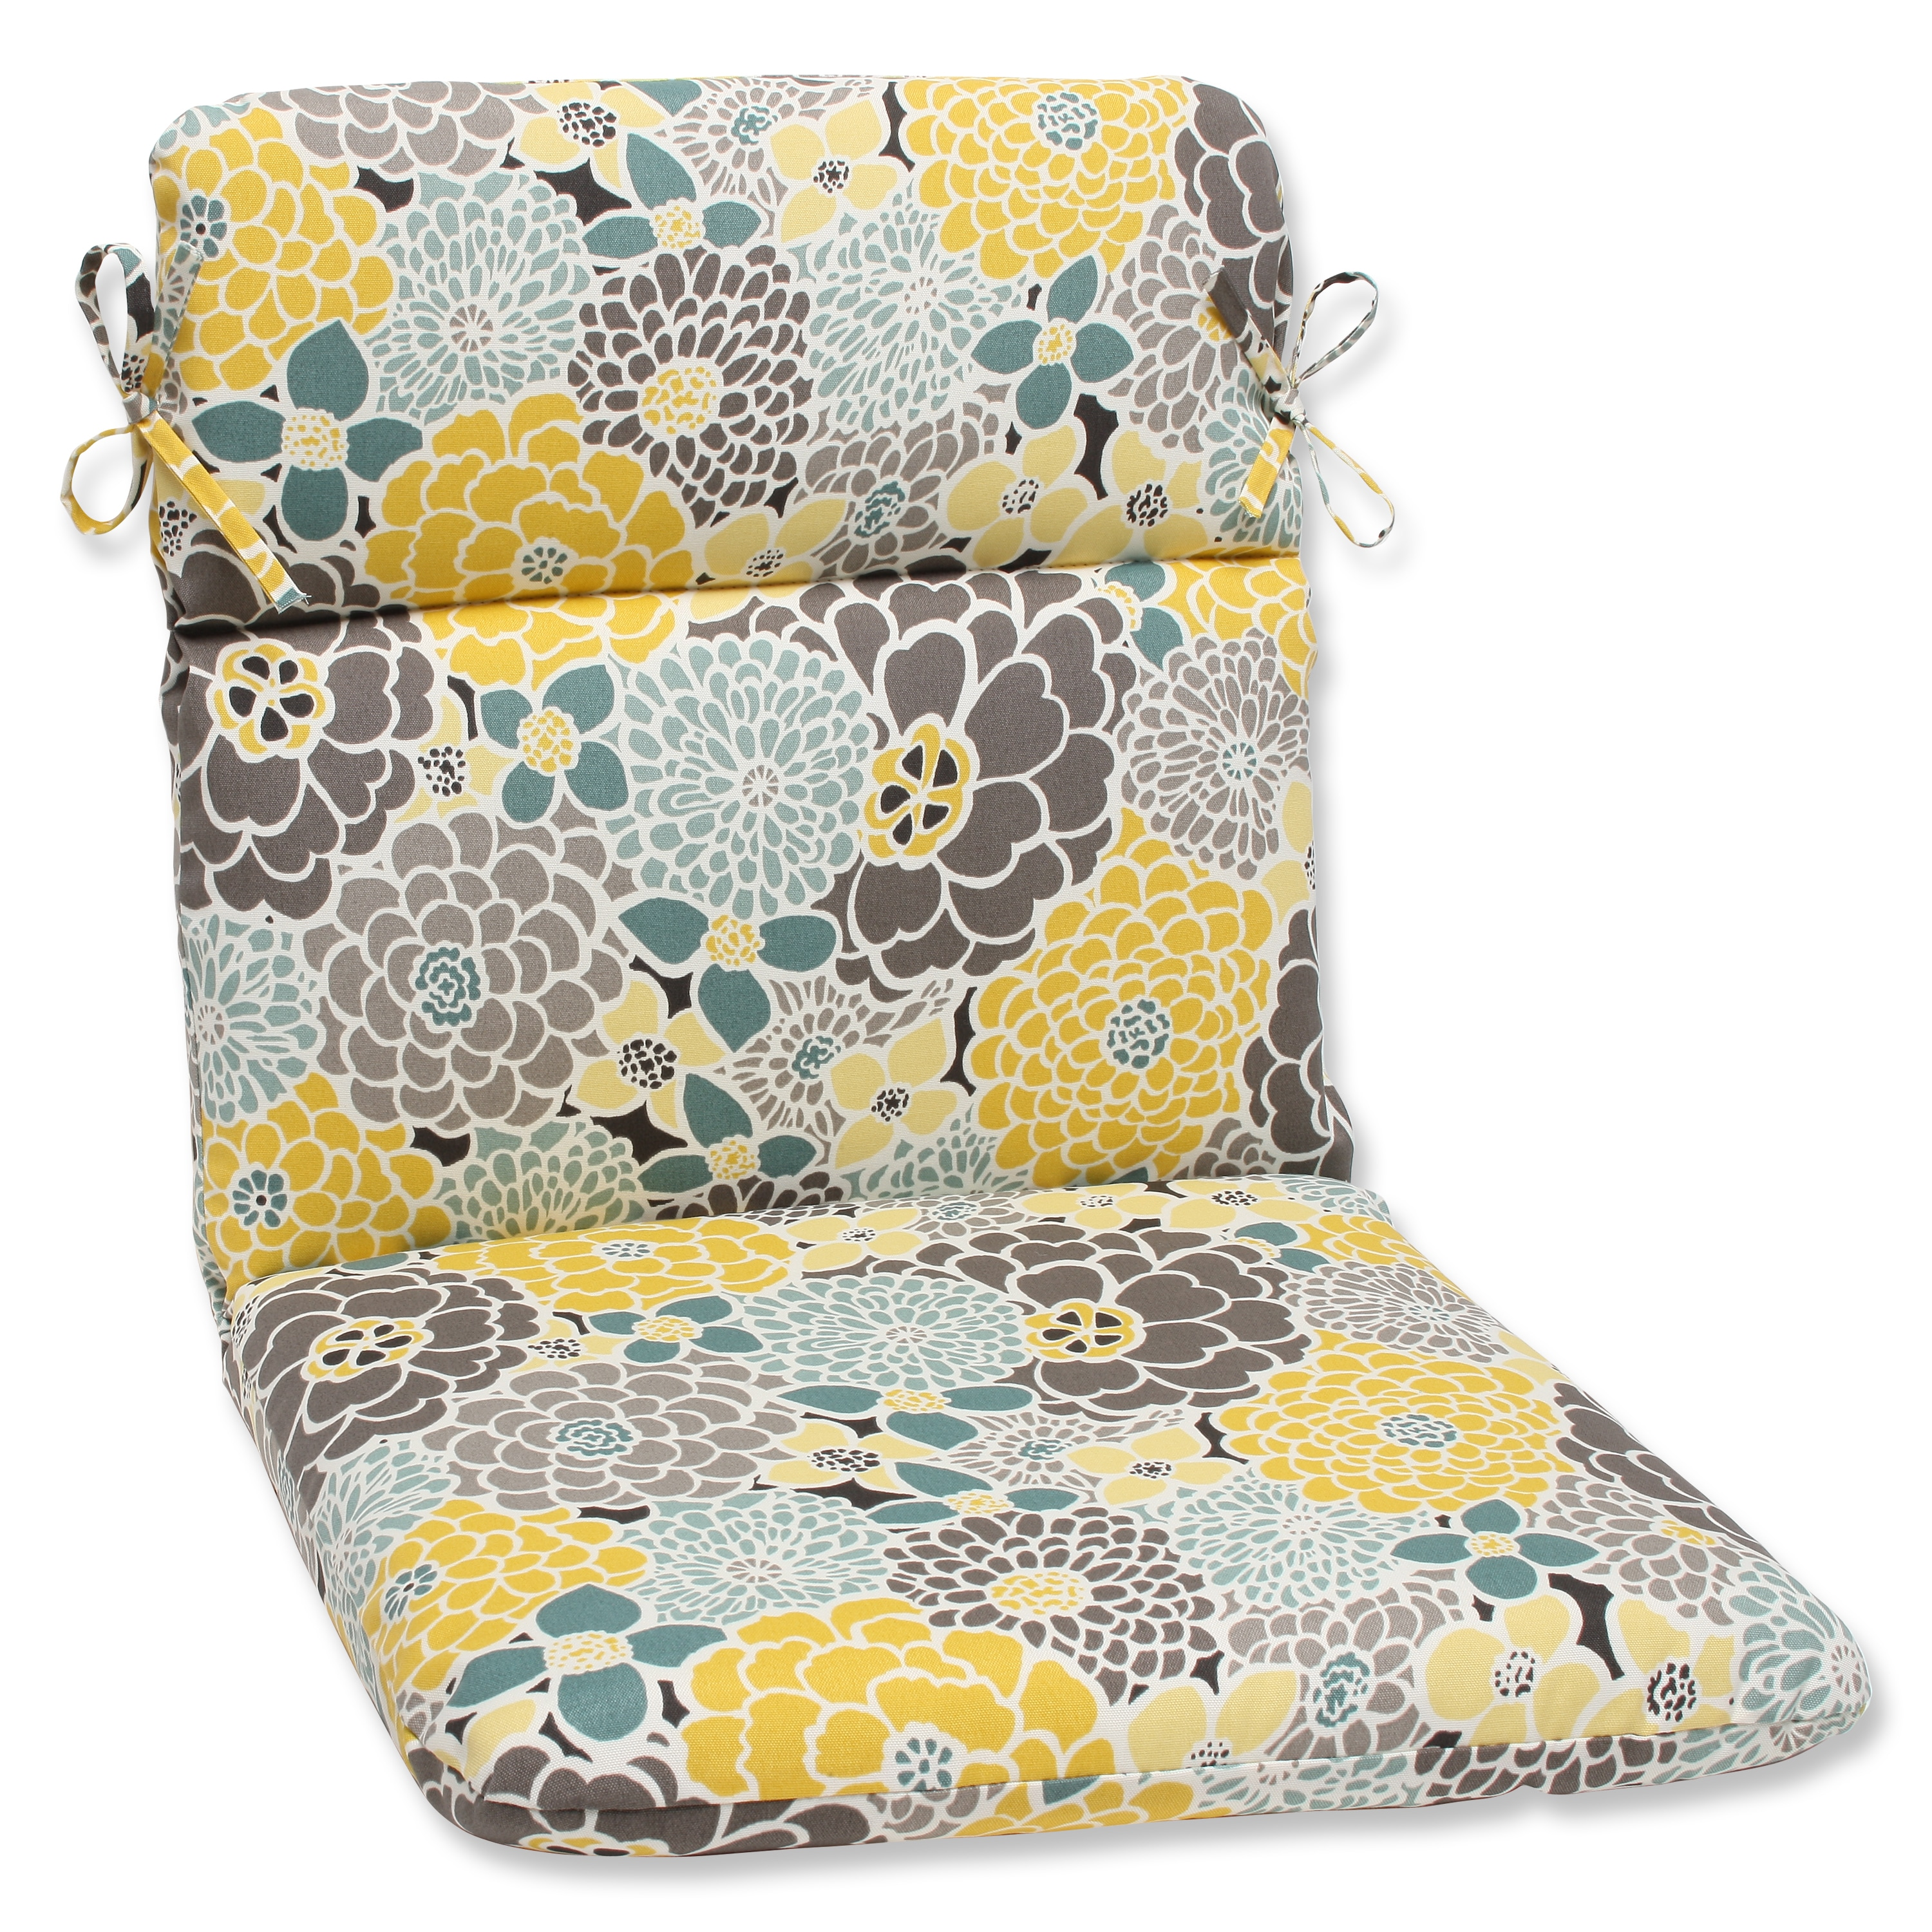 Pillow Perfect Full Bloom Rounded Corners Outdoor Chair Cushion at Sears.com